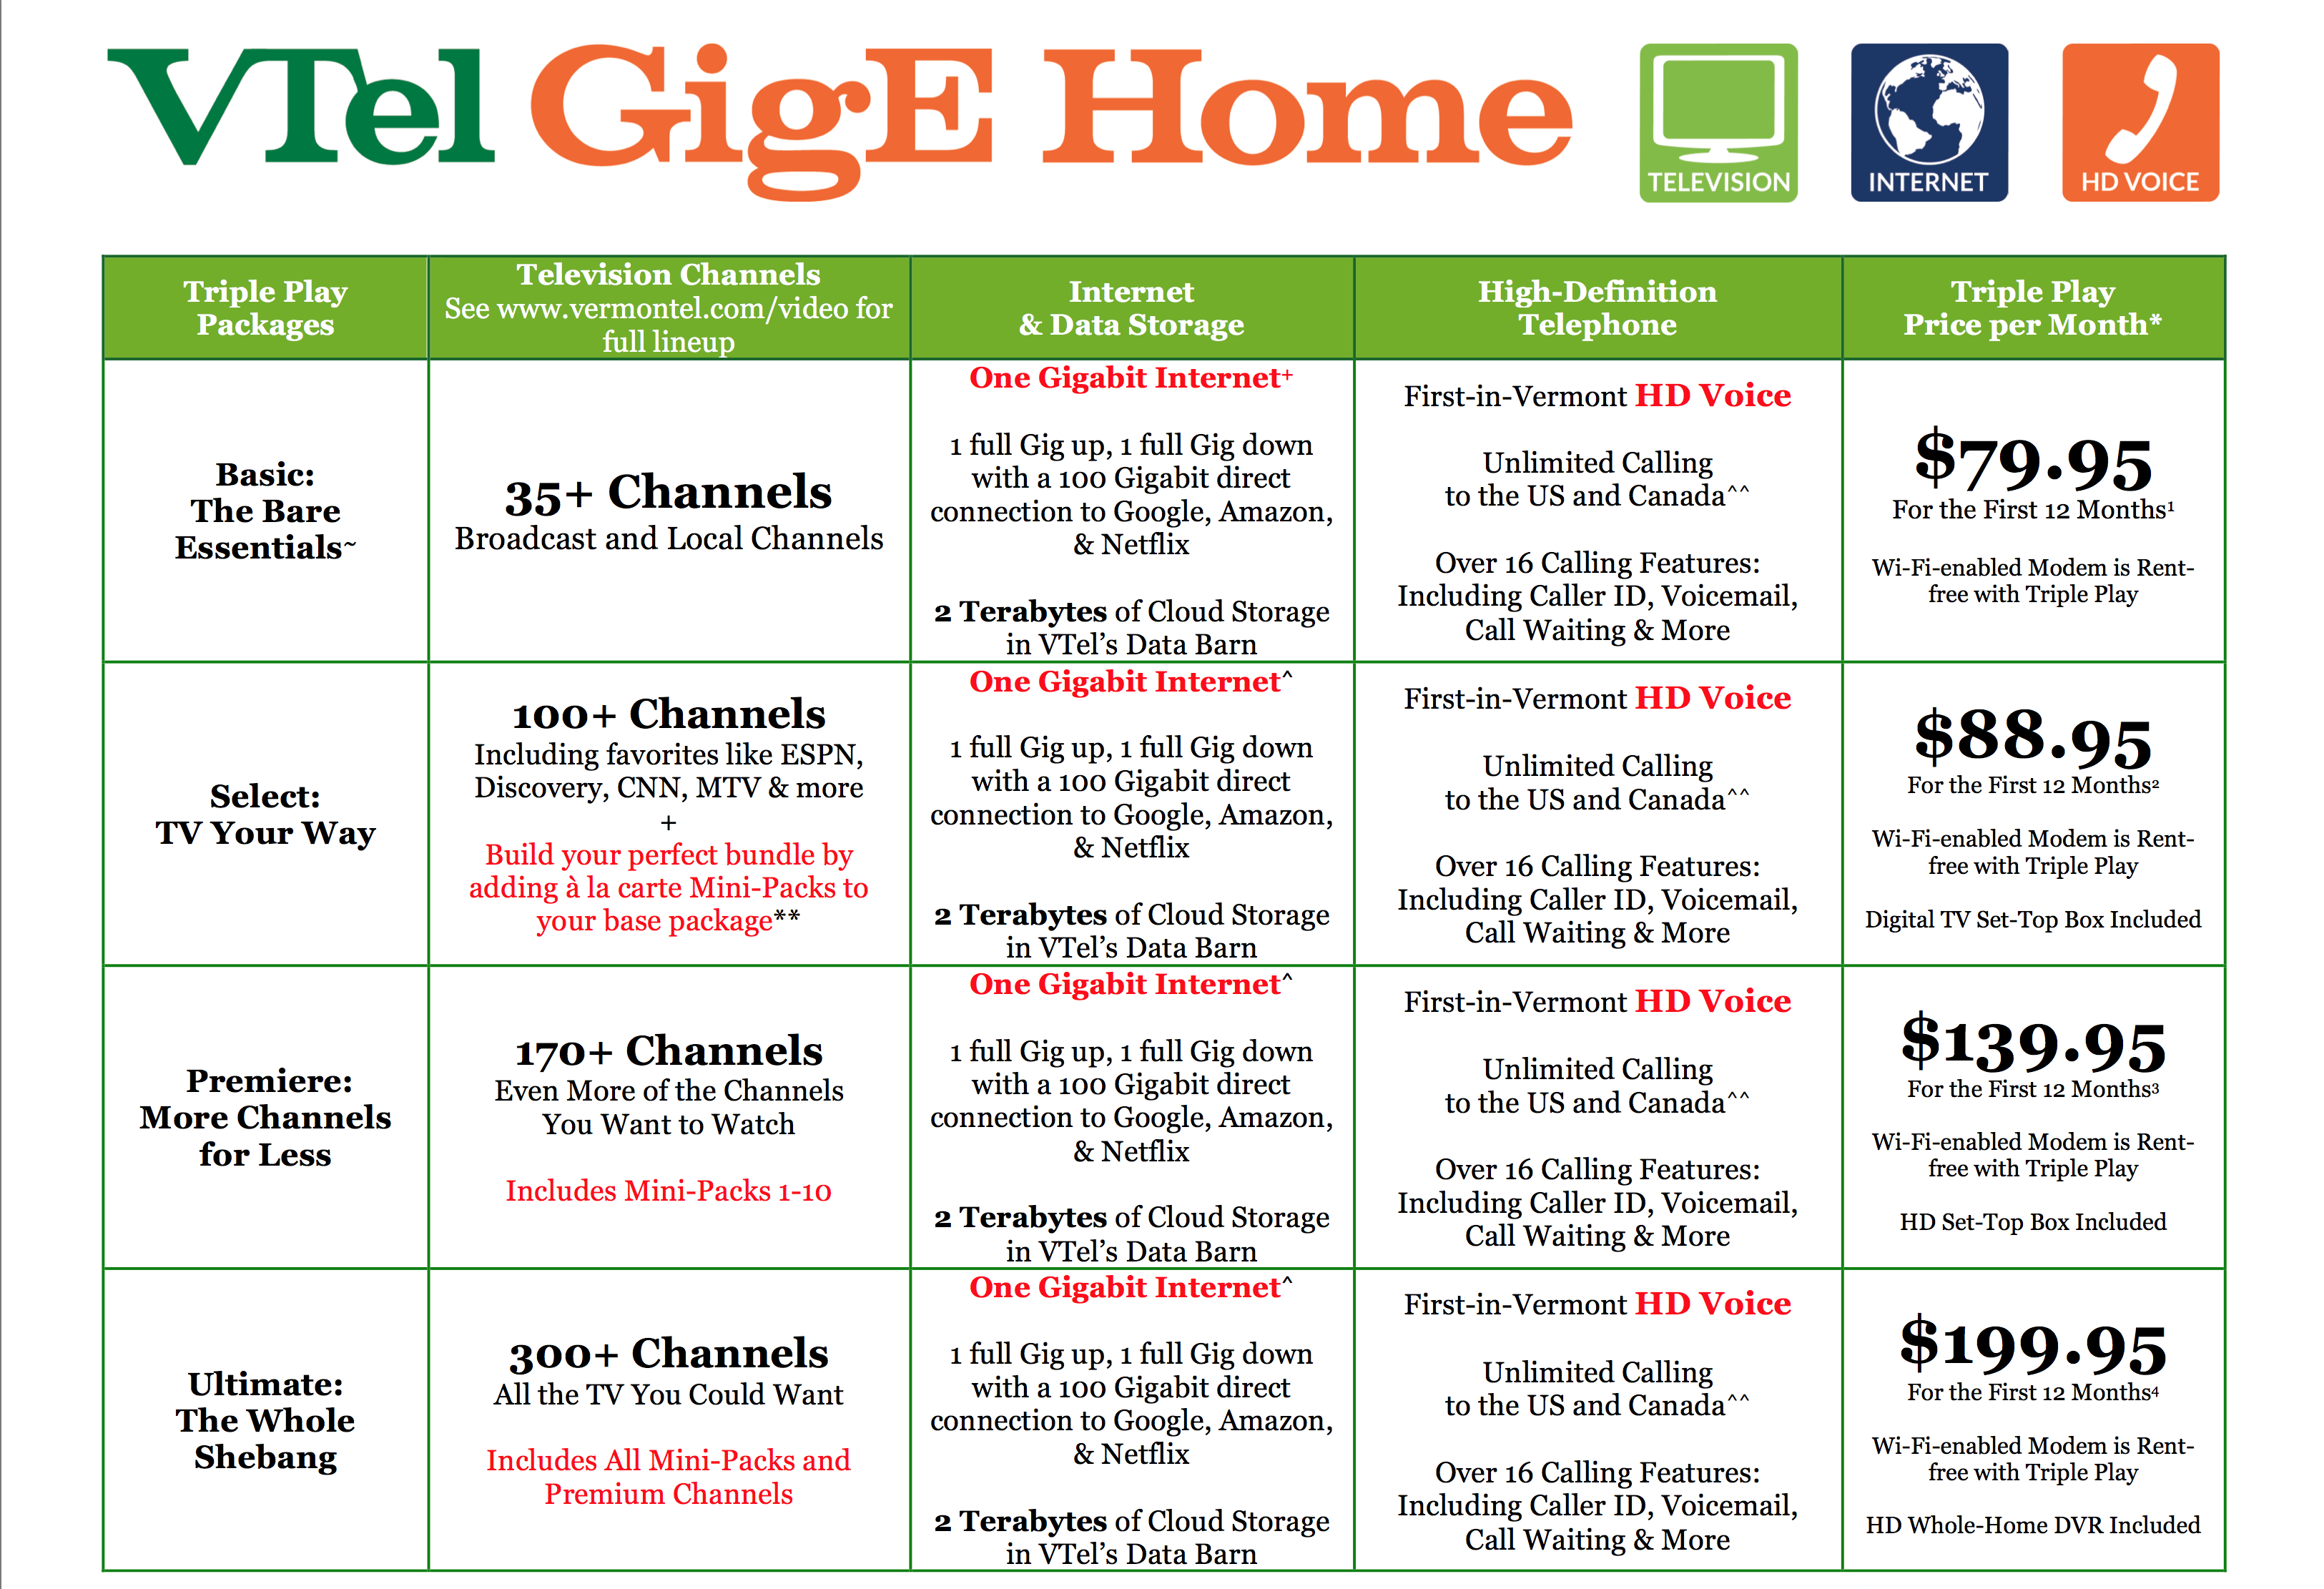 VTel GigE Home Triple Play Packages and Pricing